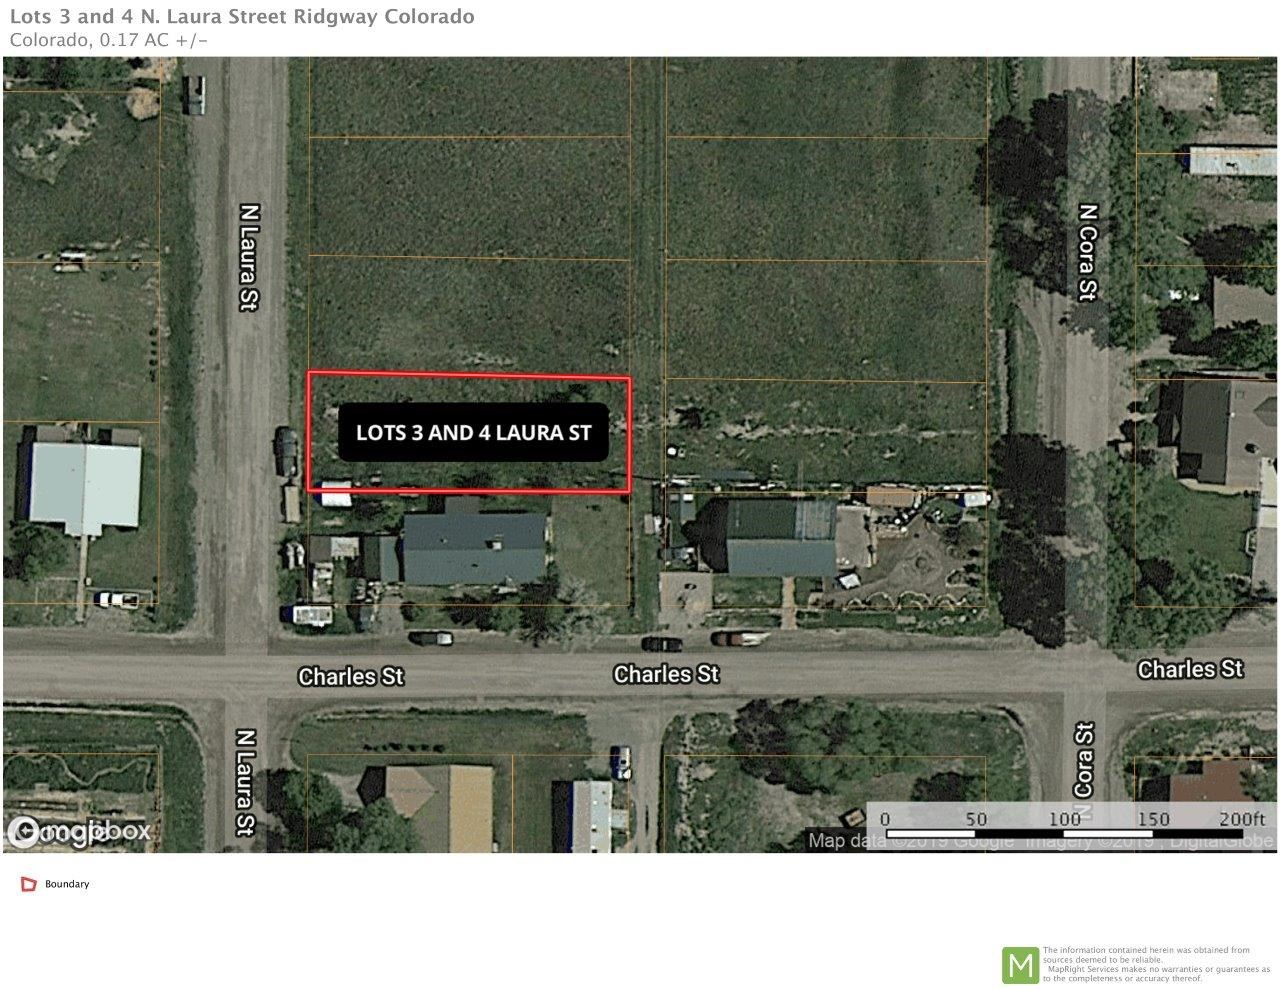 Land For Sale in Ridgway Colorado